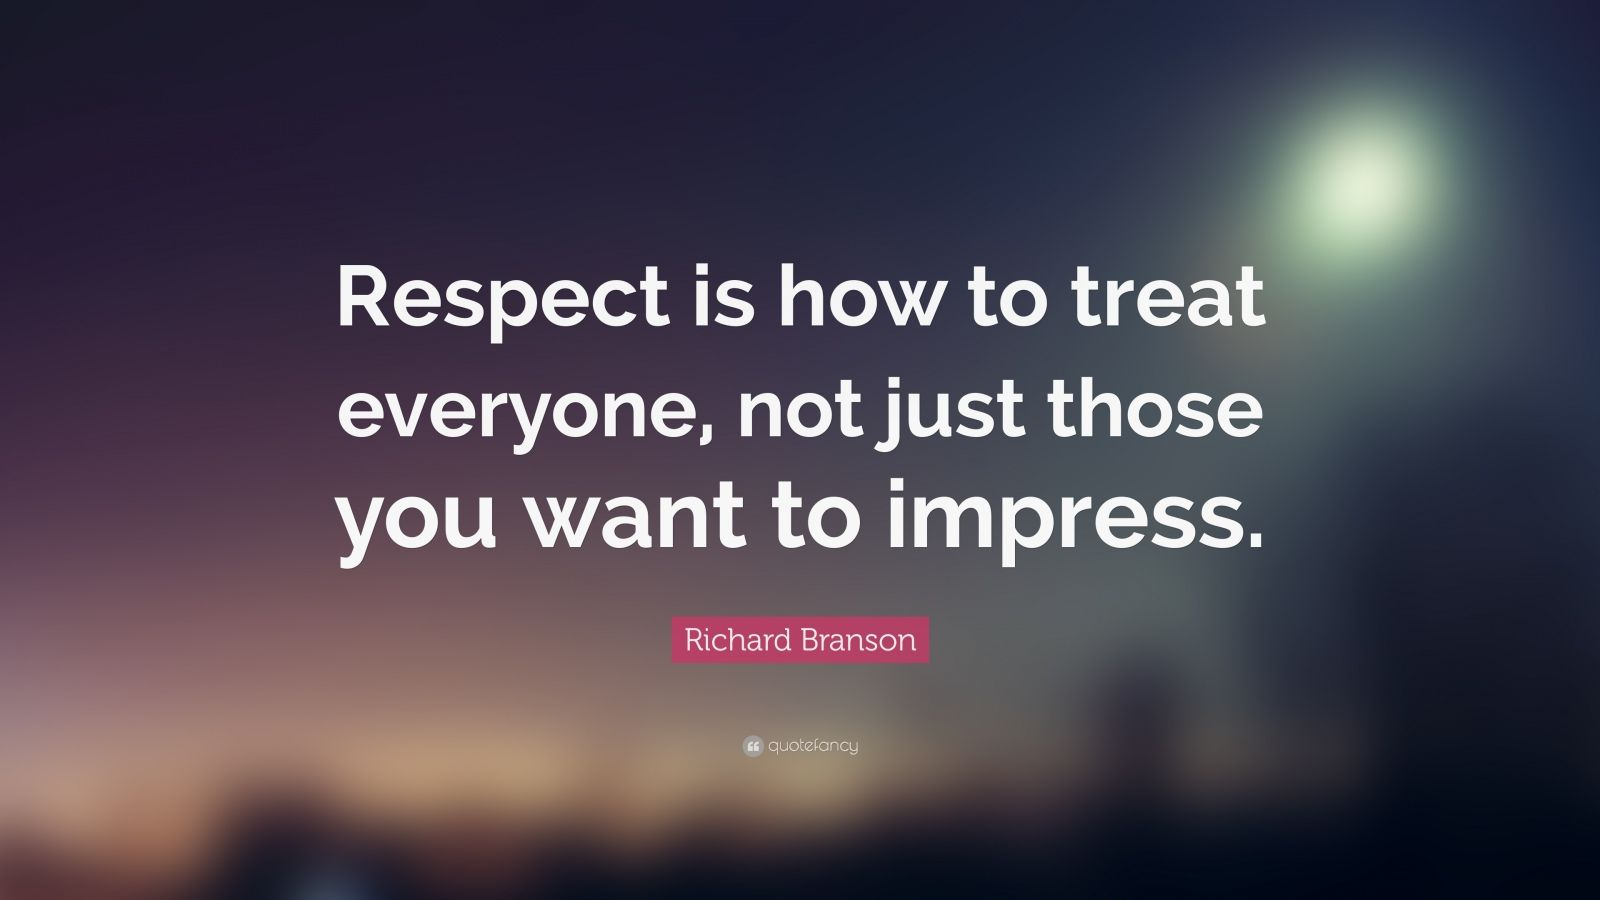 Steve Jobs Wallpaper Quotes Richard Branson Quote Respect Is How To Treat Everyone